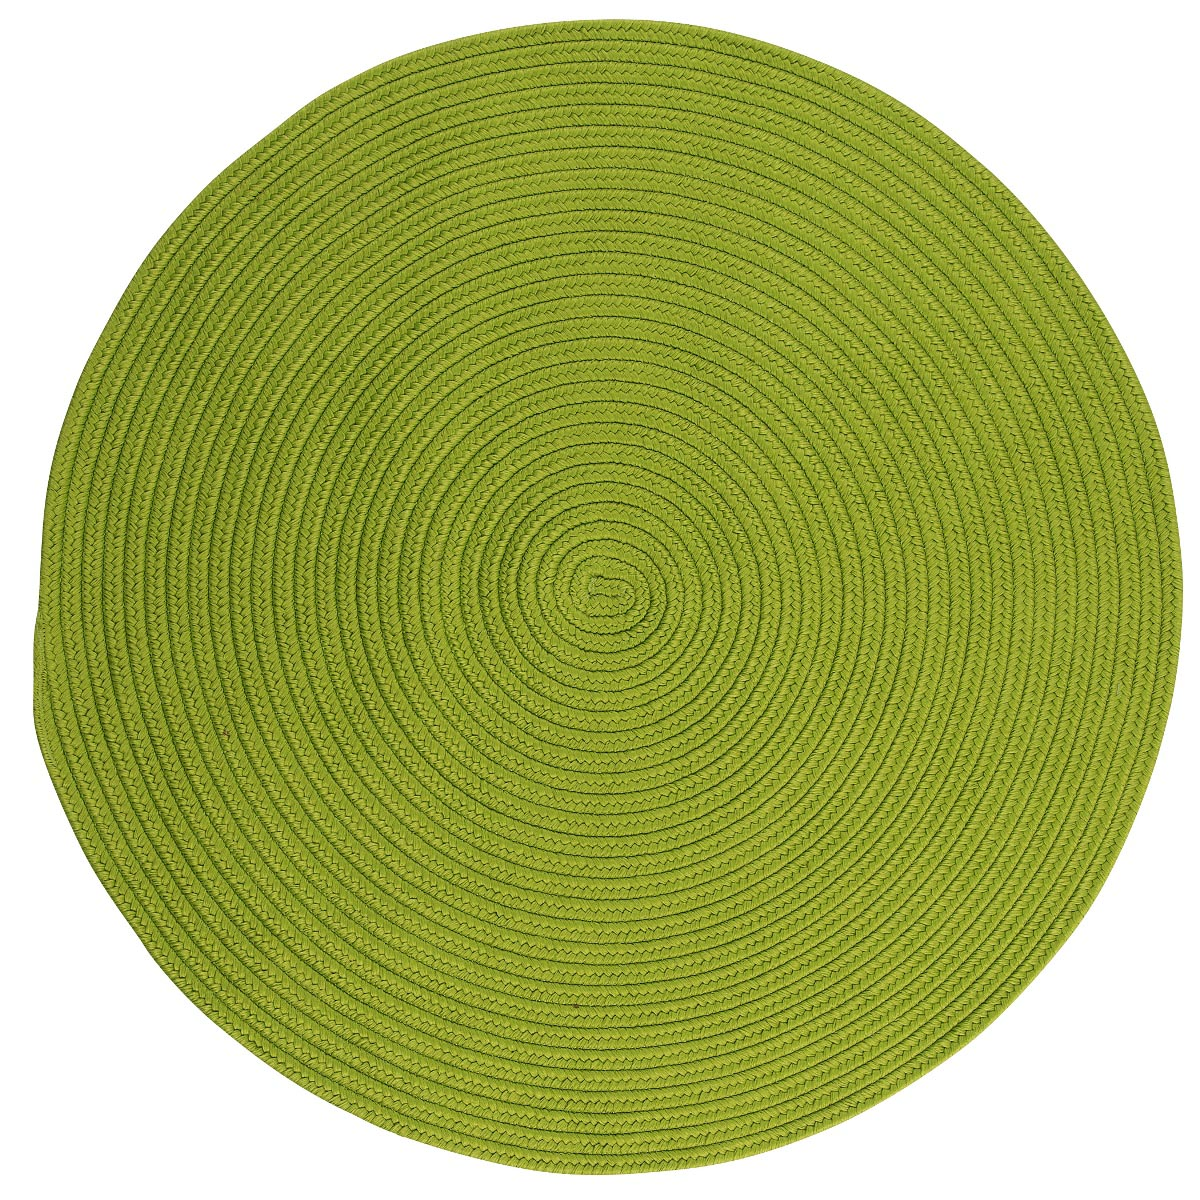 Boca Raton Bright Green Outdoor Braided Round Rugs